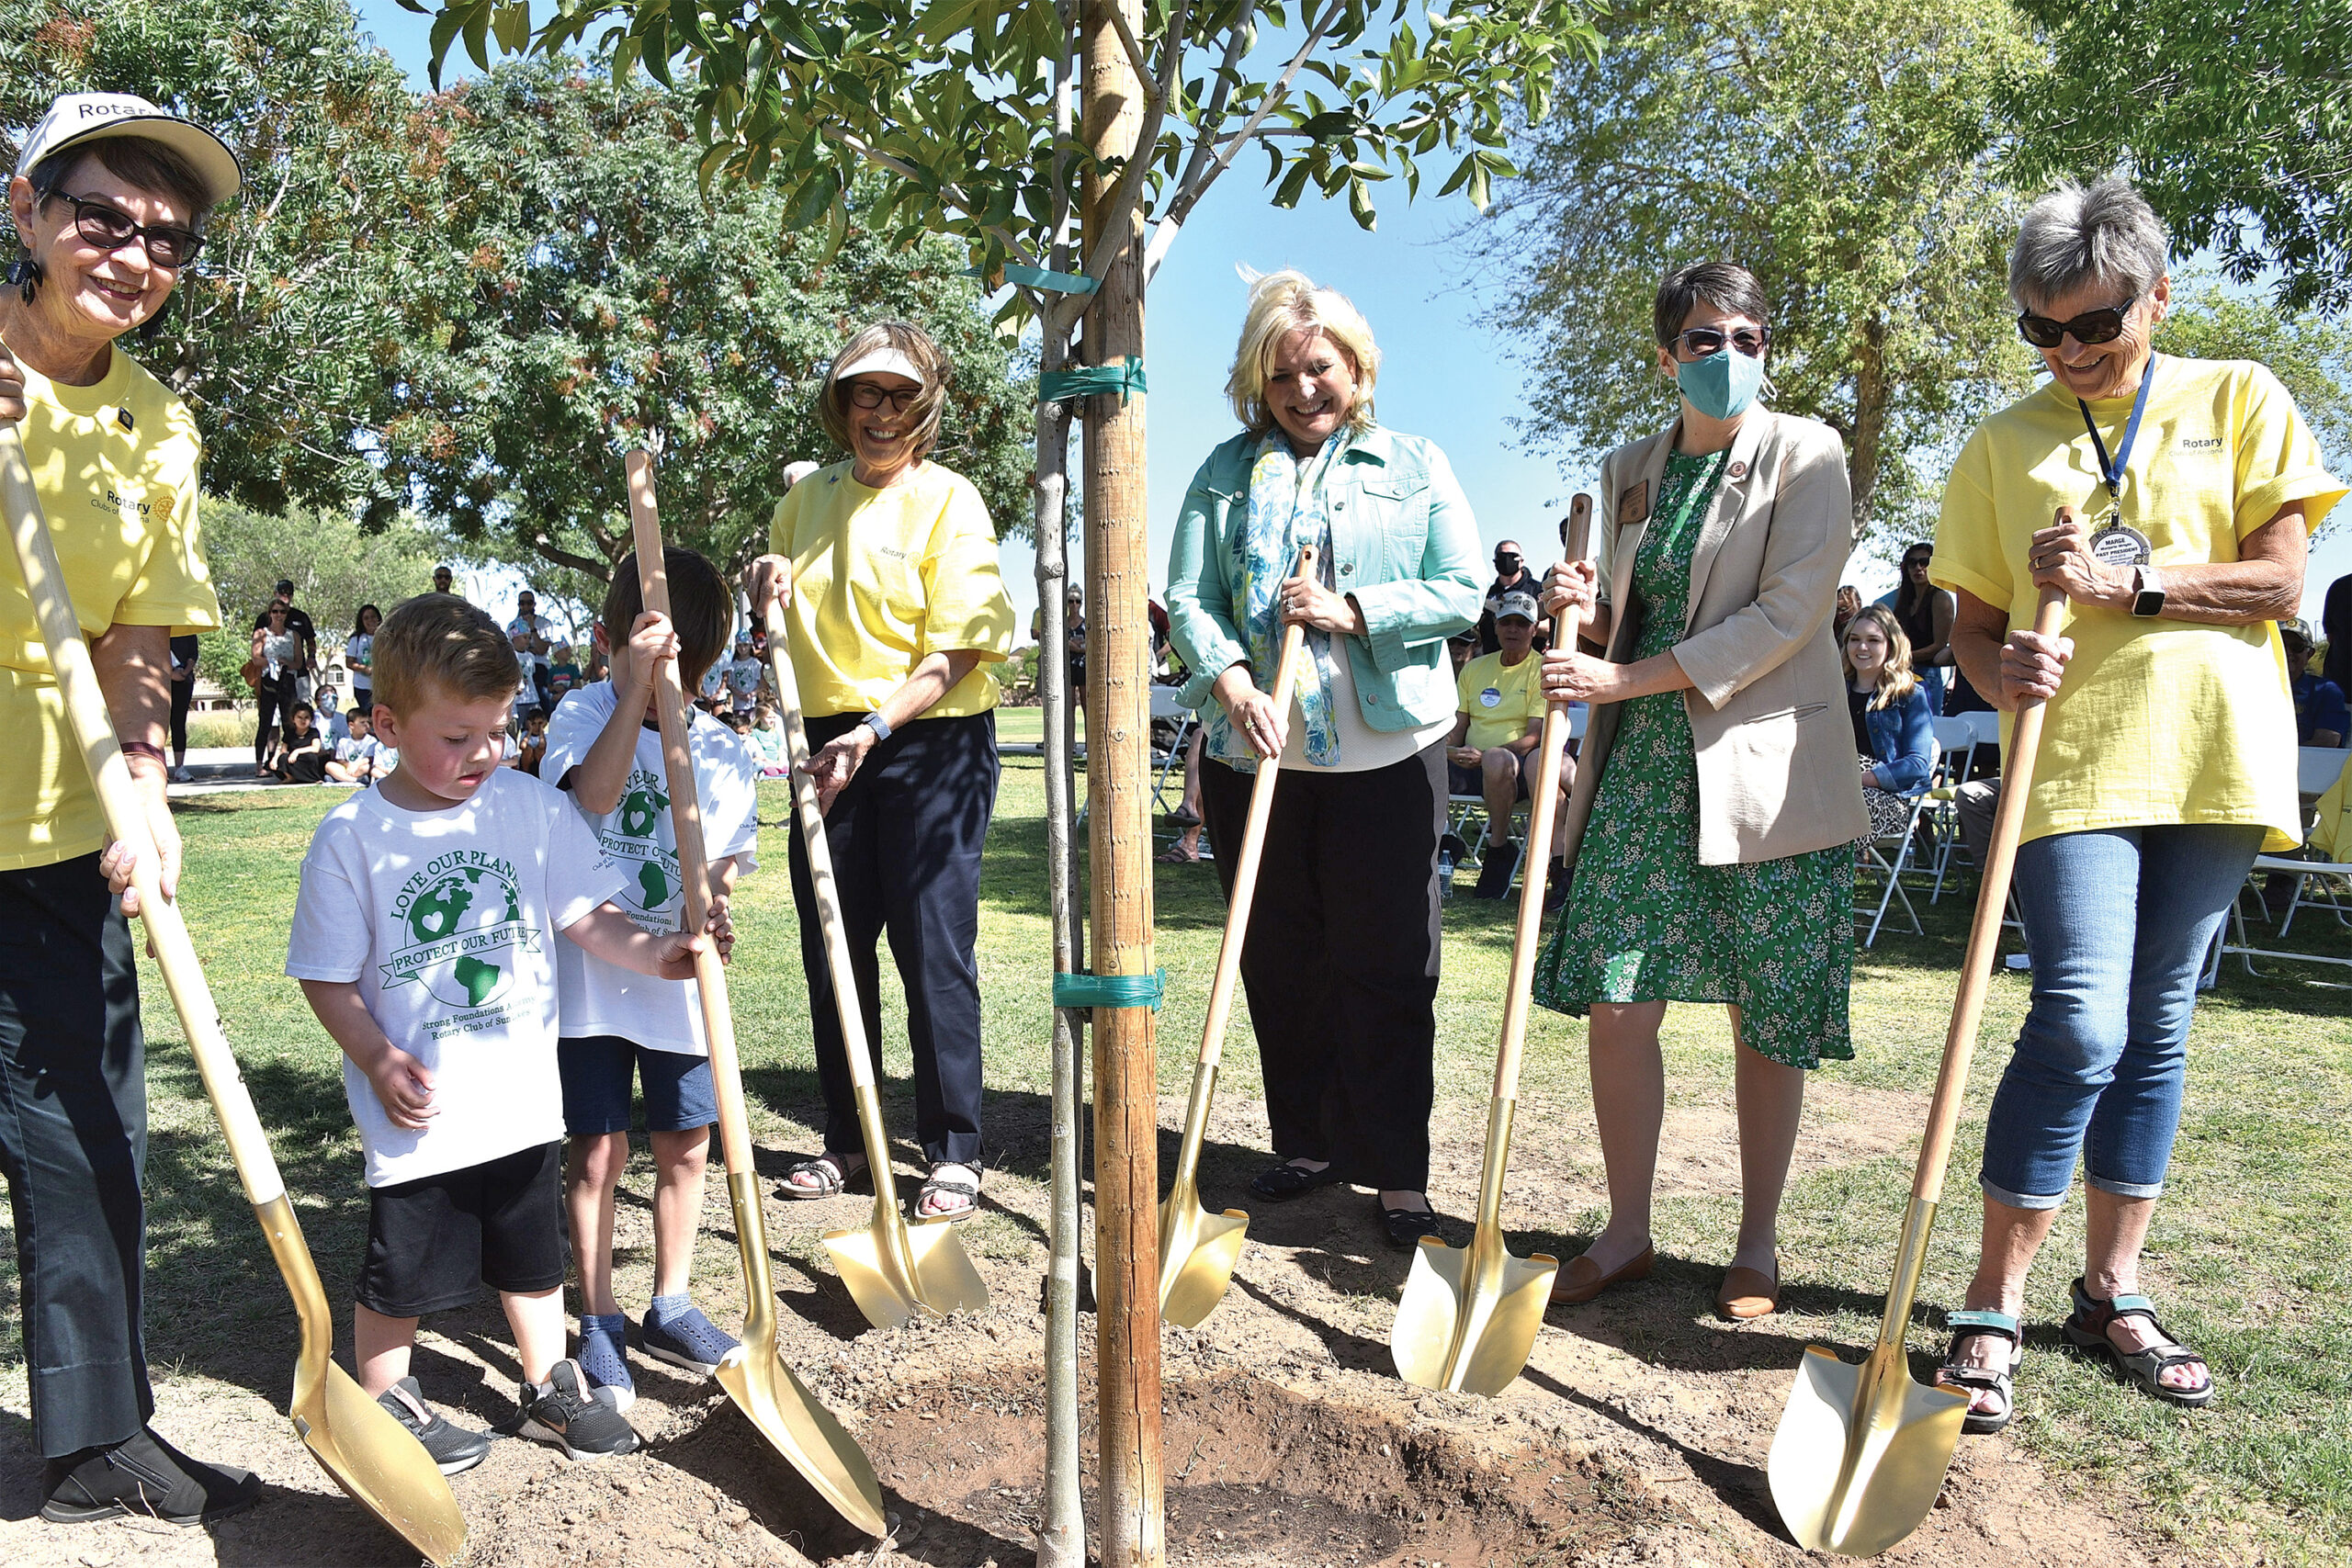 Left to right: Judi Edmonds, Head of Sun Lakes Rotary Club Peace Builder Committee; Daxton Neal (age 3) and Ben Bradley (age 5), Strong Foundations Academy; Nancy Van Pelt, District 5495 Peace Builder Chair and Past District Governor; Terri Kimble, President/CEO of Chandler Chamber of Commerce; Jennifer Pawlik, State Representative for District 17; and Marge Wright, Project Manager on the Tree Celebration Event for SLRC